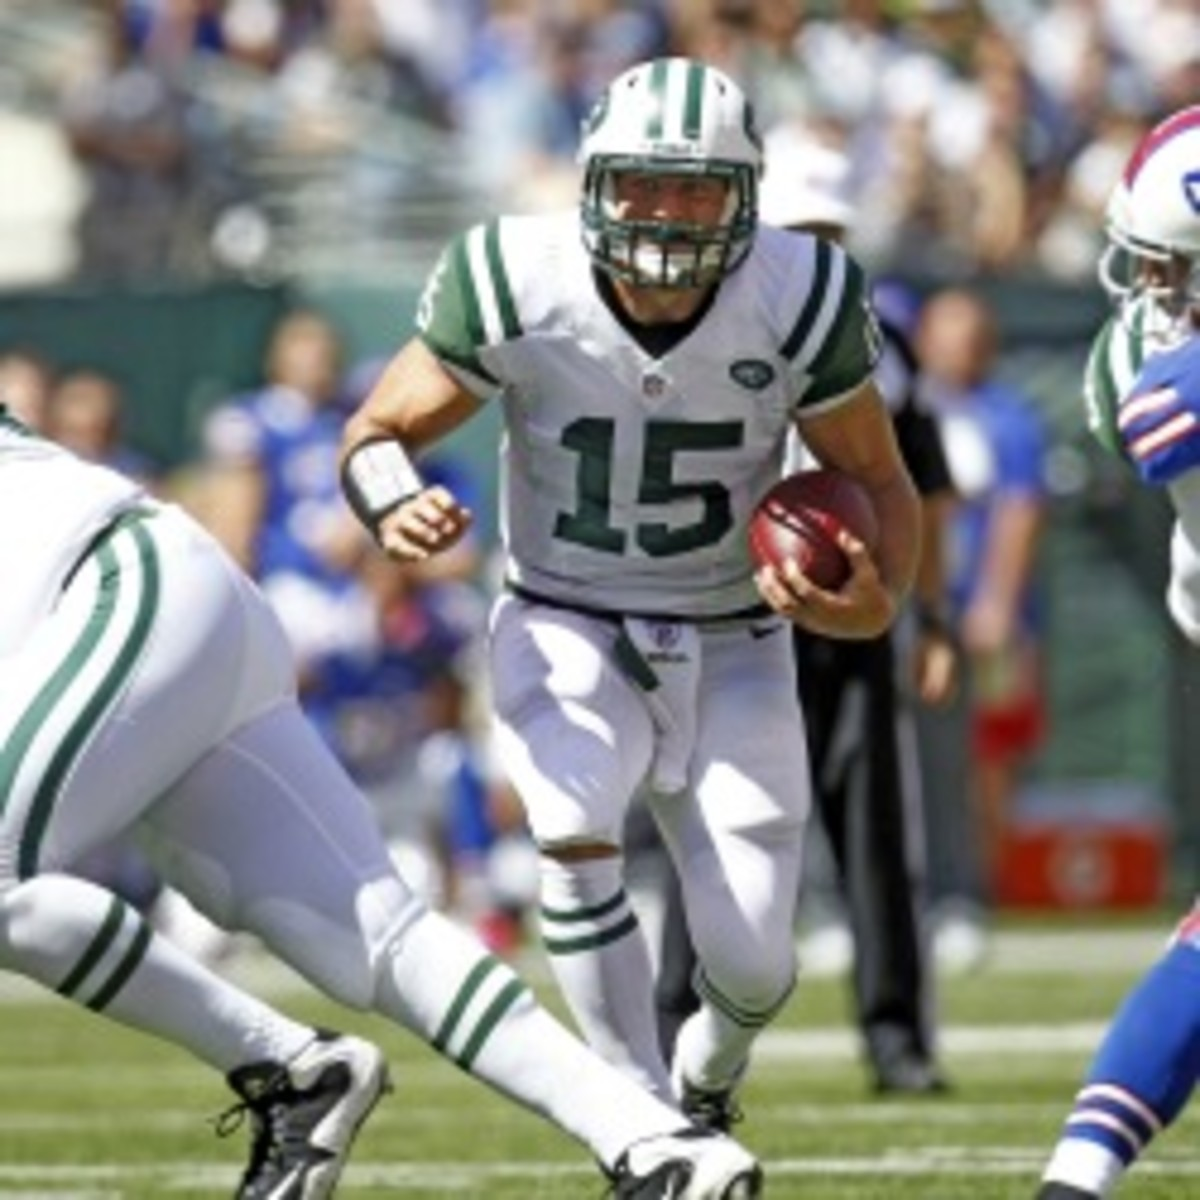 Jets backup quarterback Tim Tebow has a lot of questions concerning his future. Jeff Zelevansky/Getty Images)